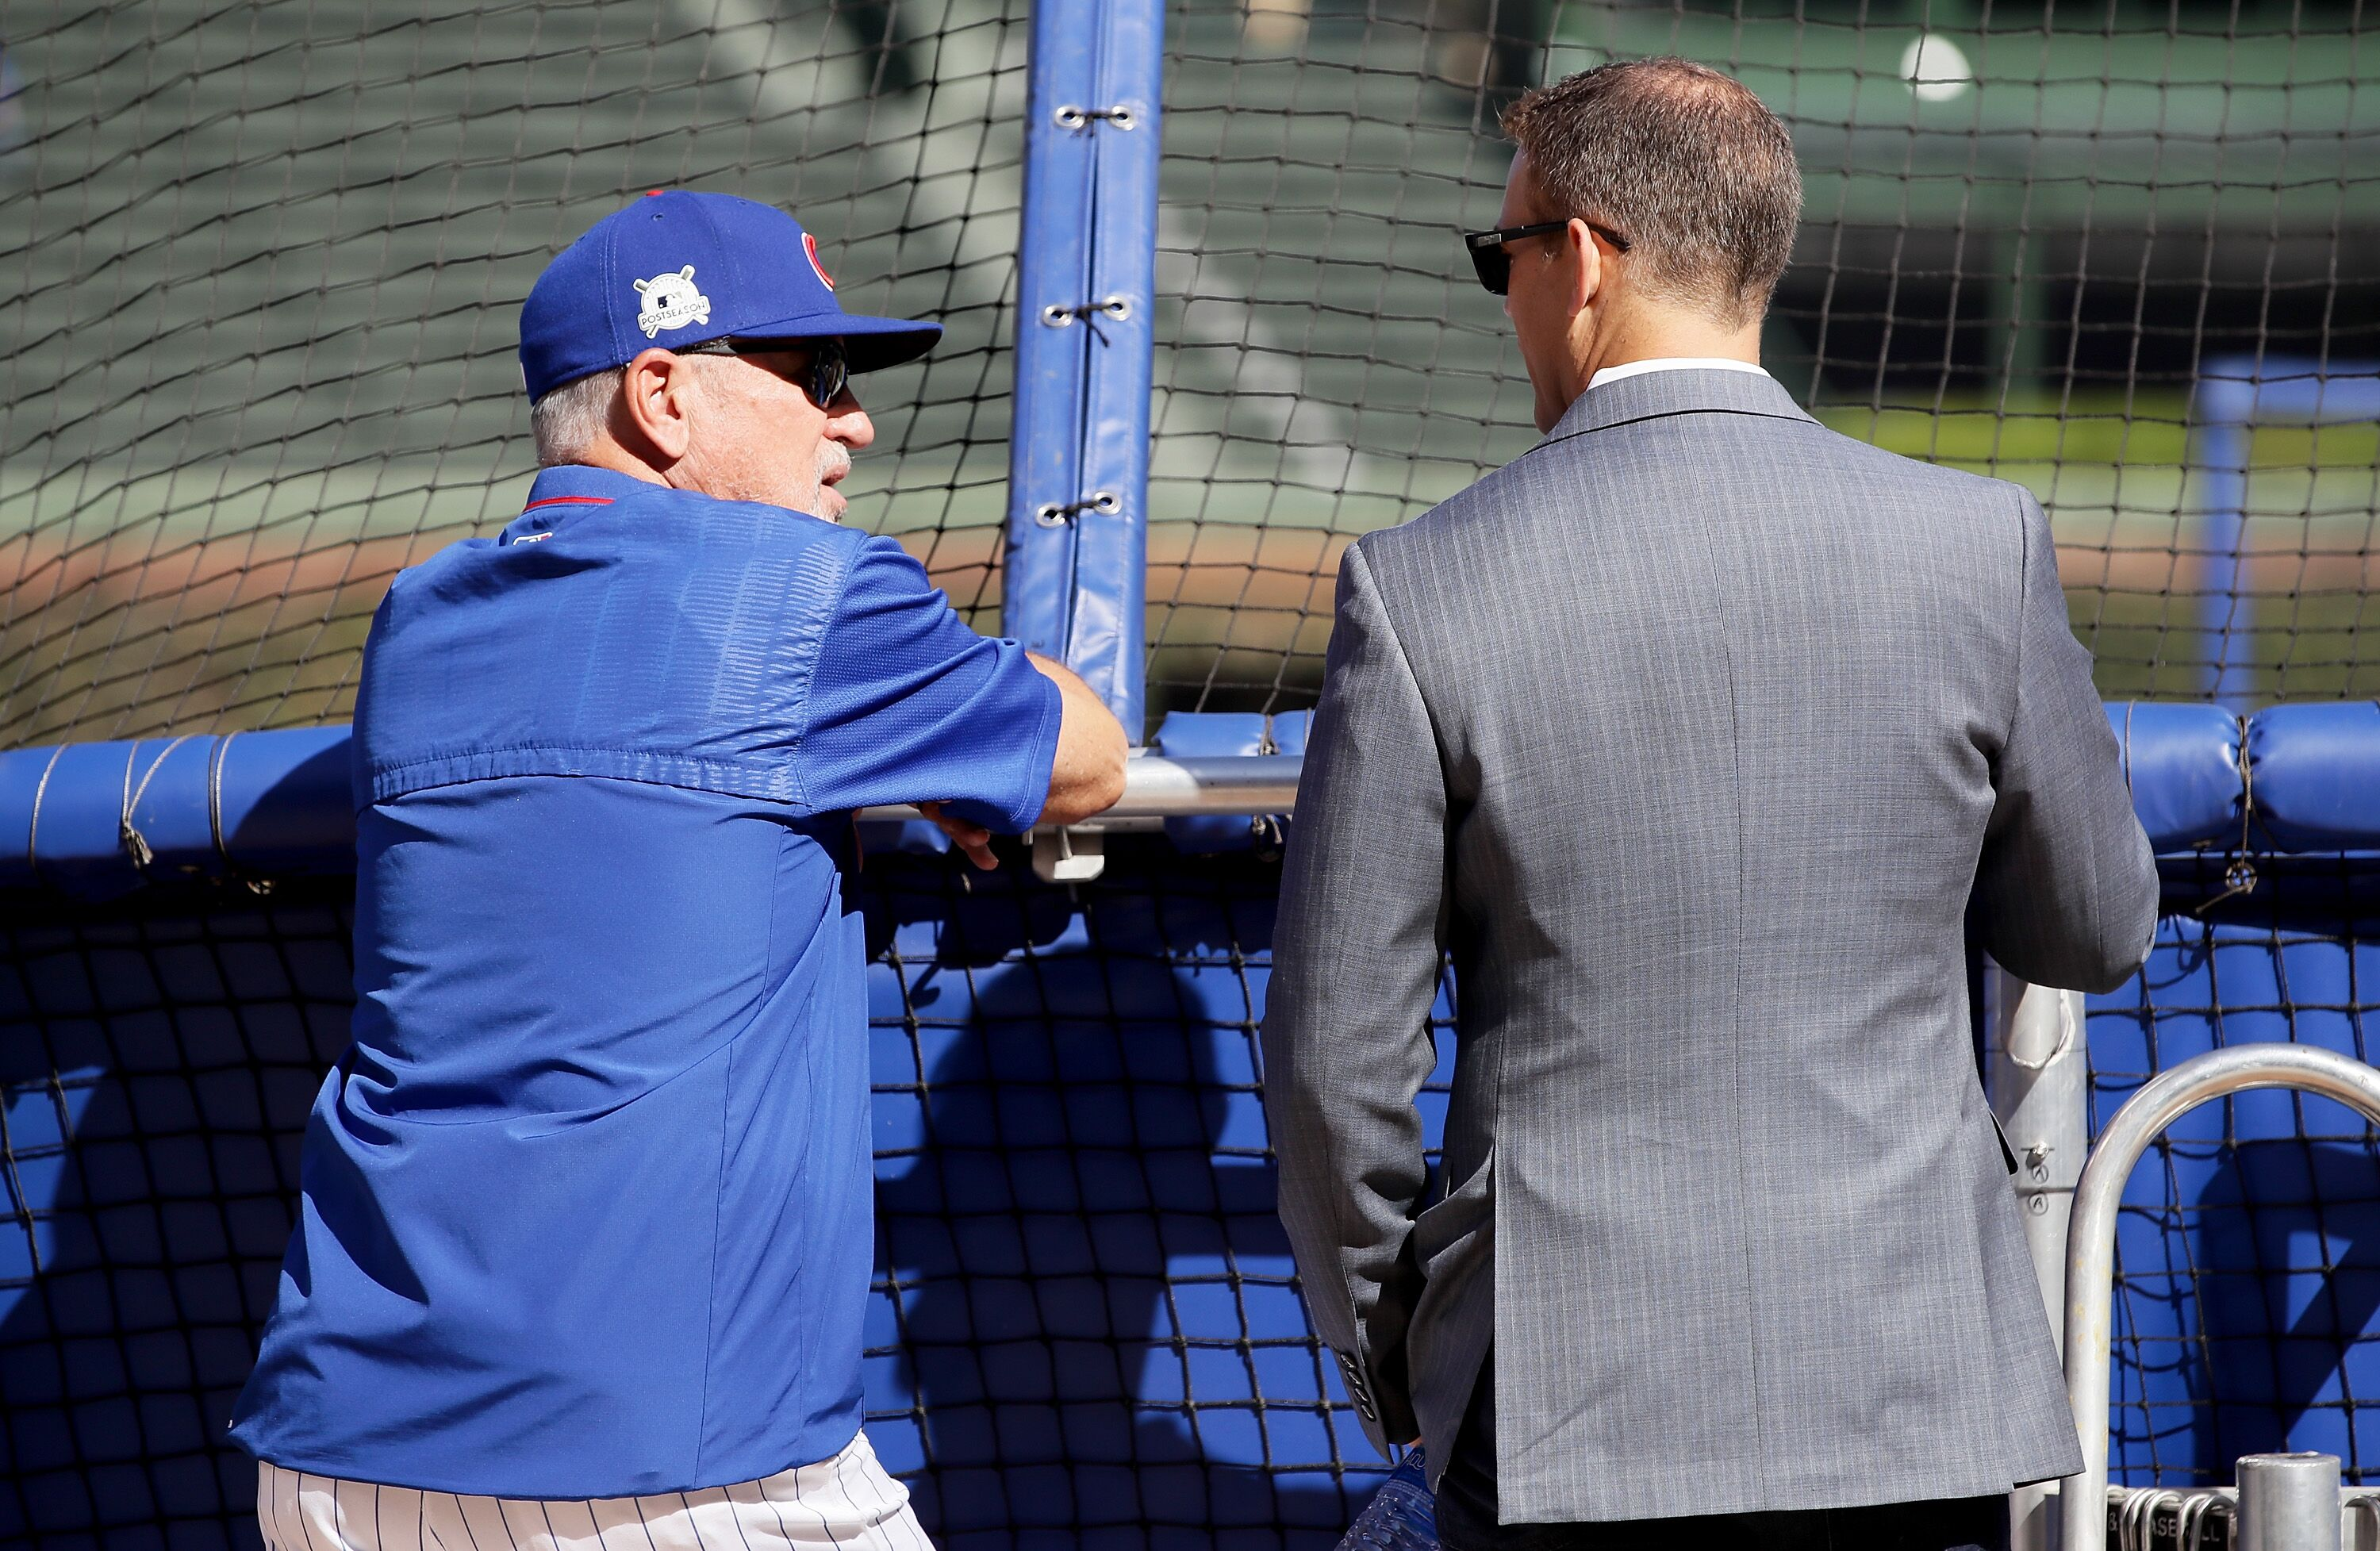 Chicago Cubs: Desperately holding on, hoping for better second-half